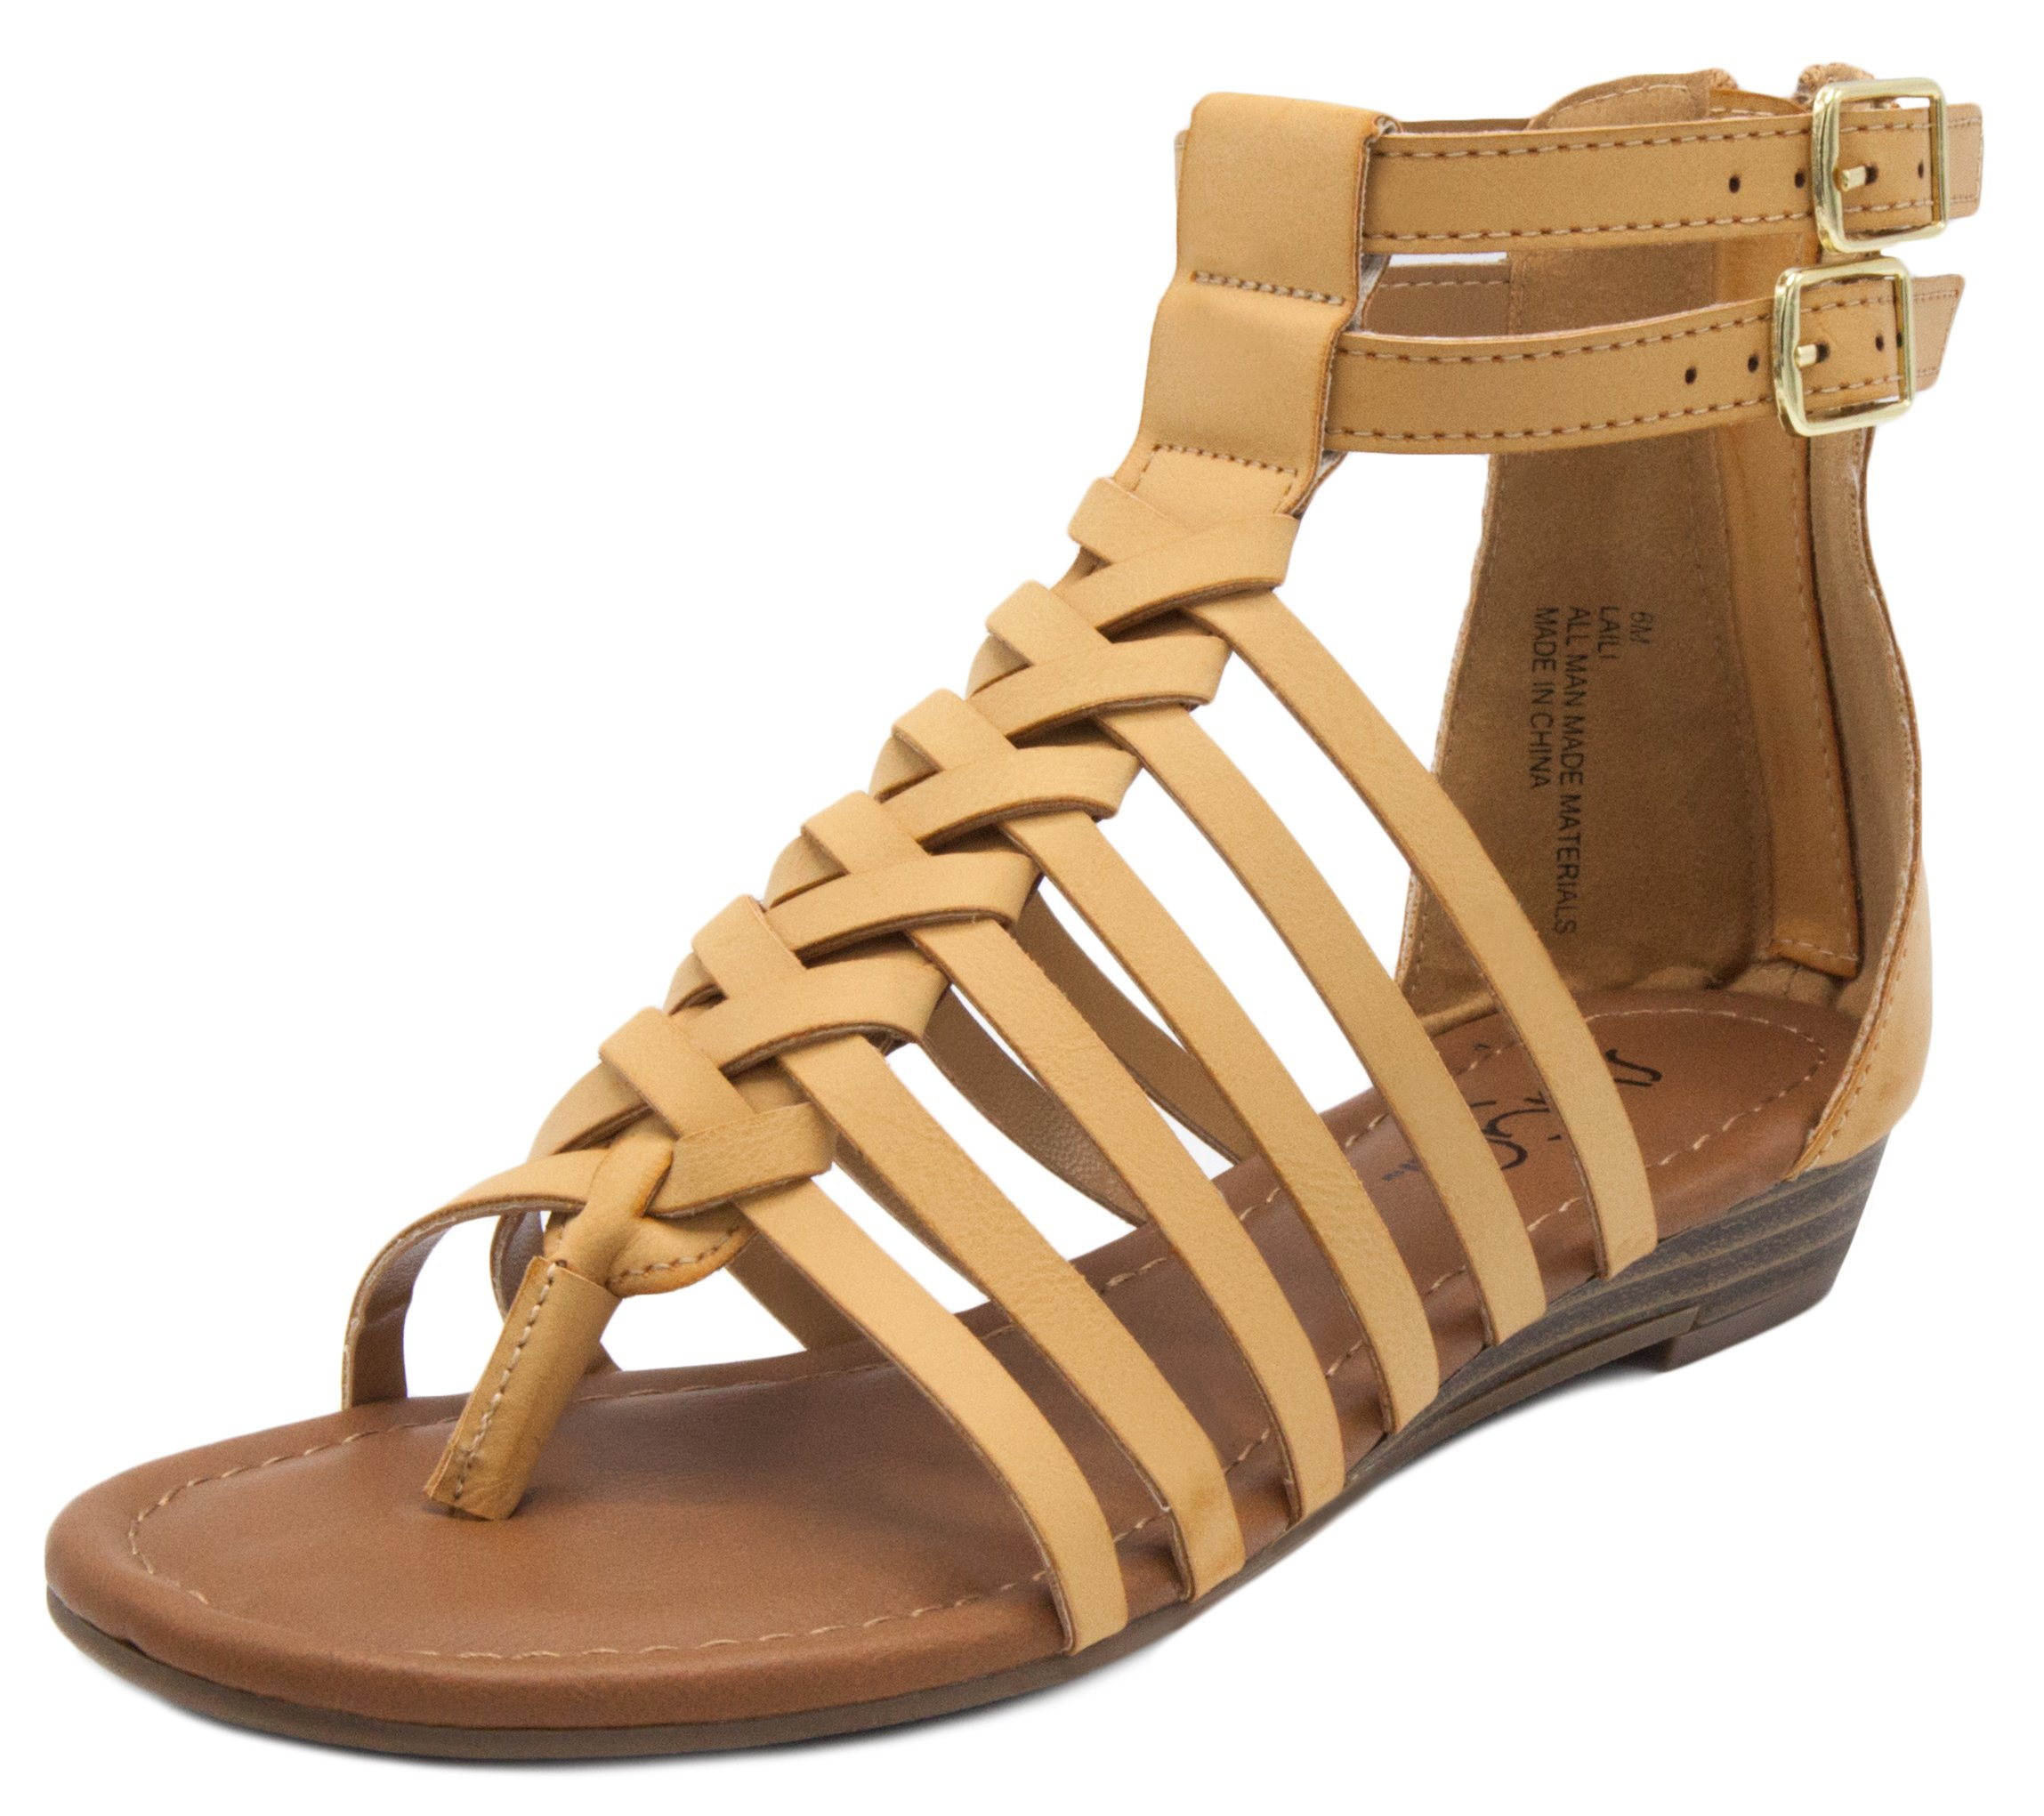 Sugar Women's Laili Sandal Strappy Gladiator Demi Wedge with Buckle Natural 10